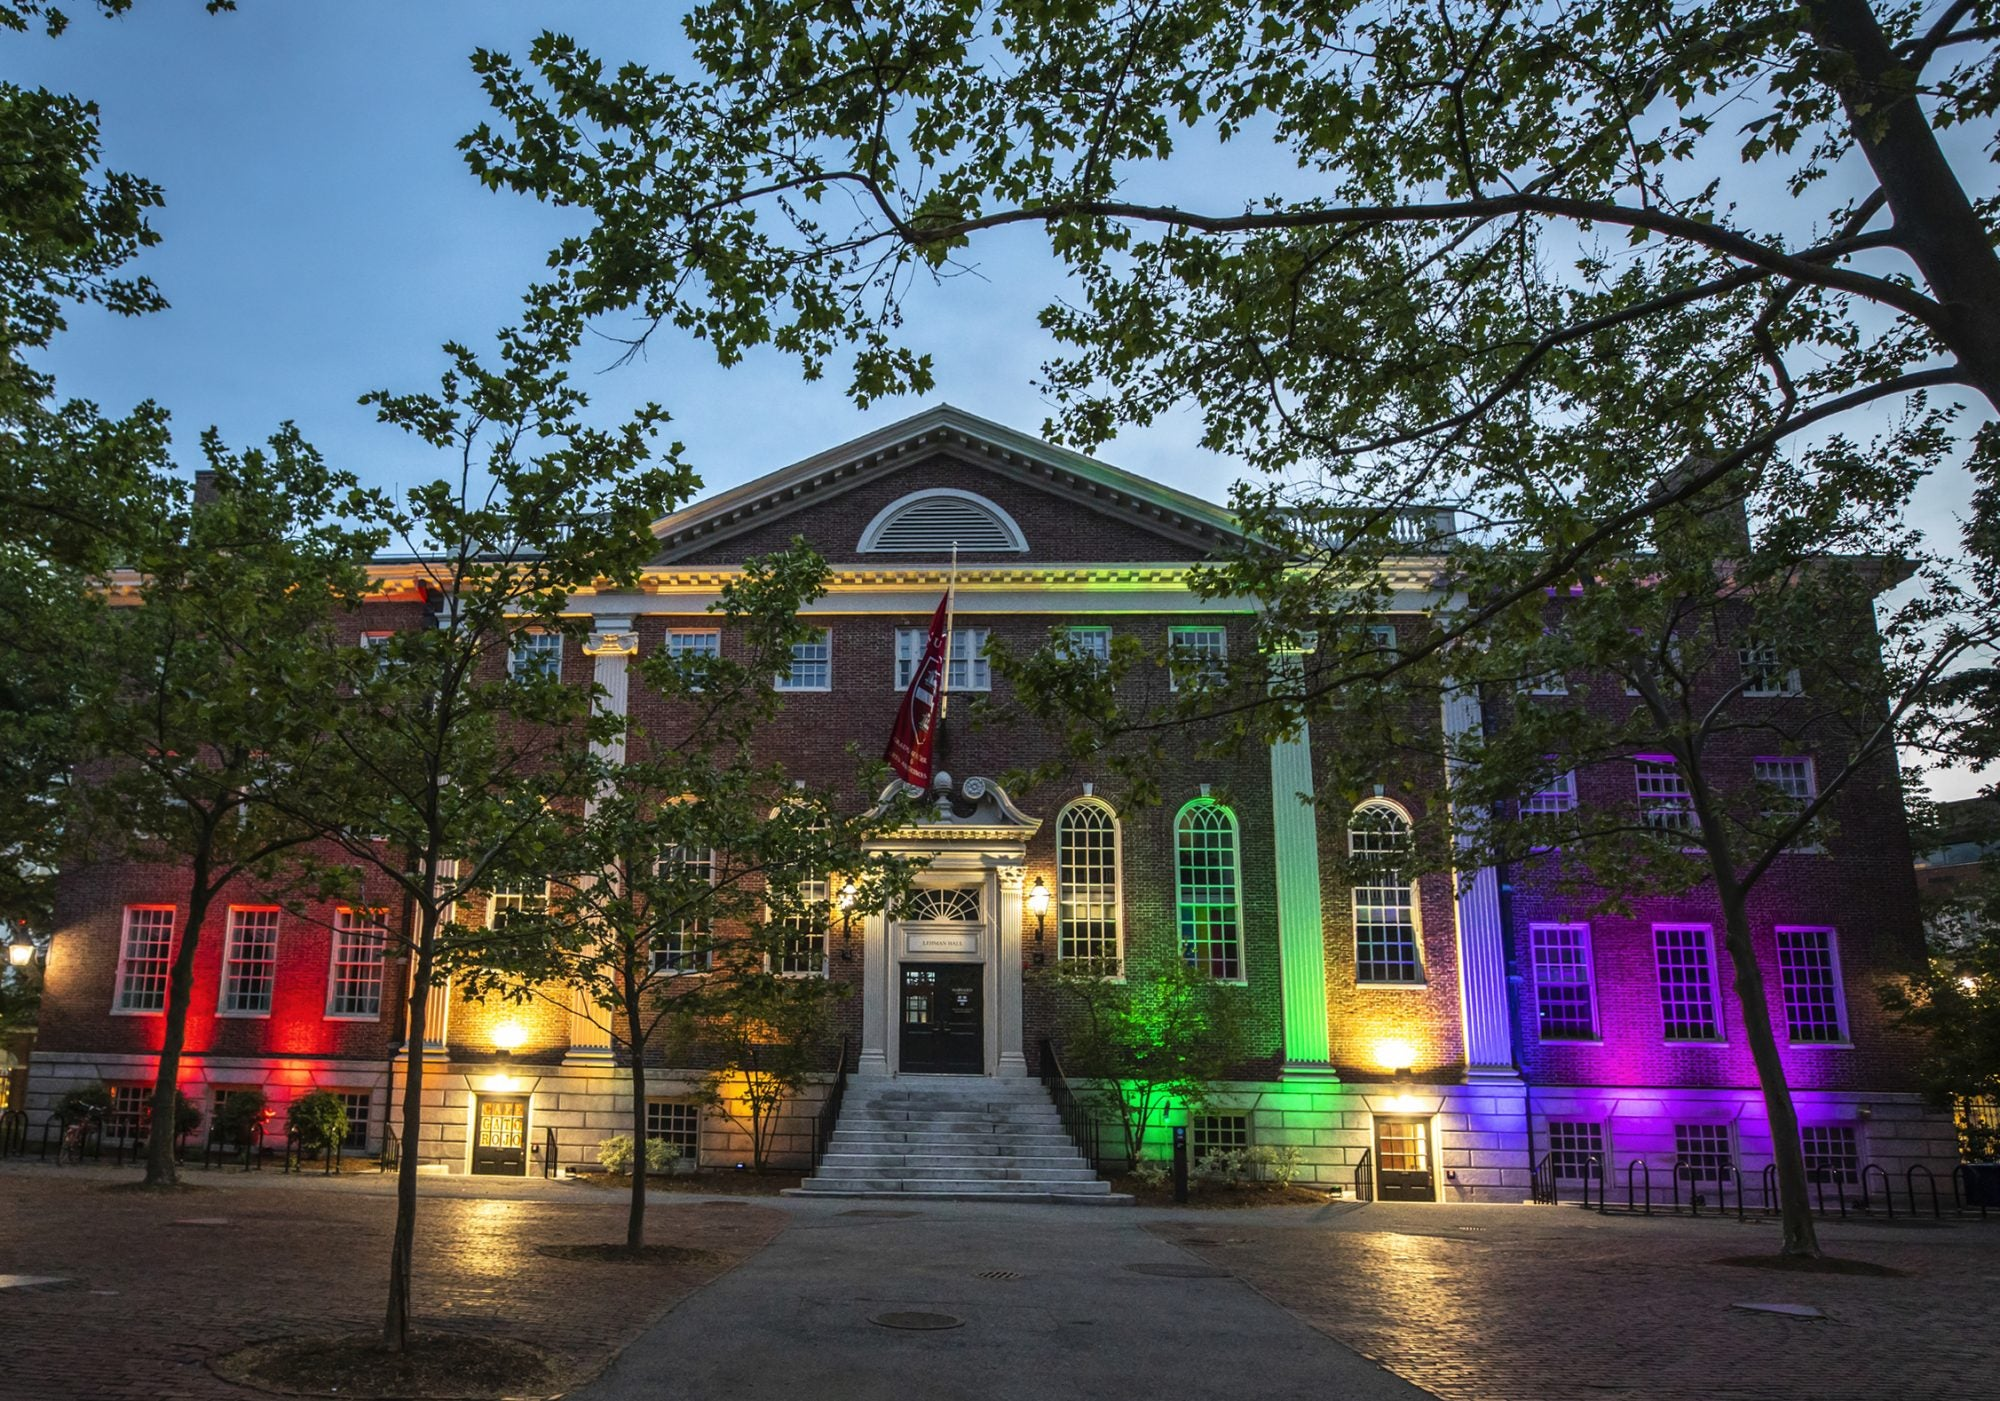 A brick building with rainbow lights in front